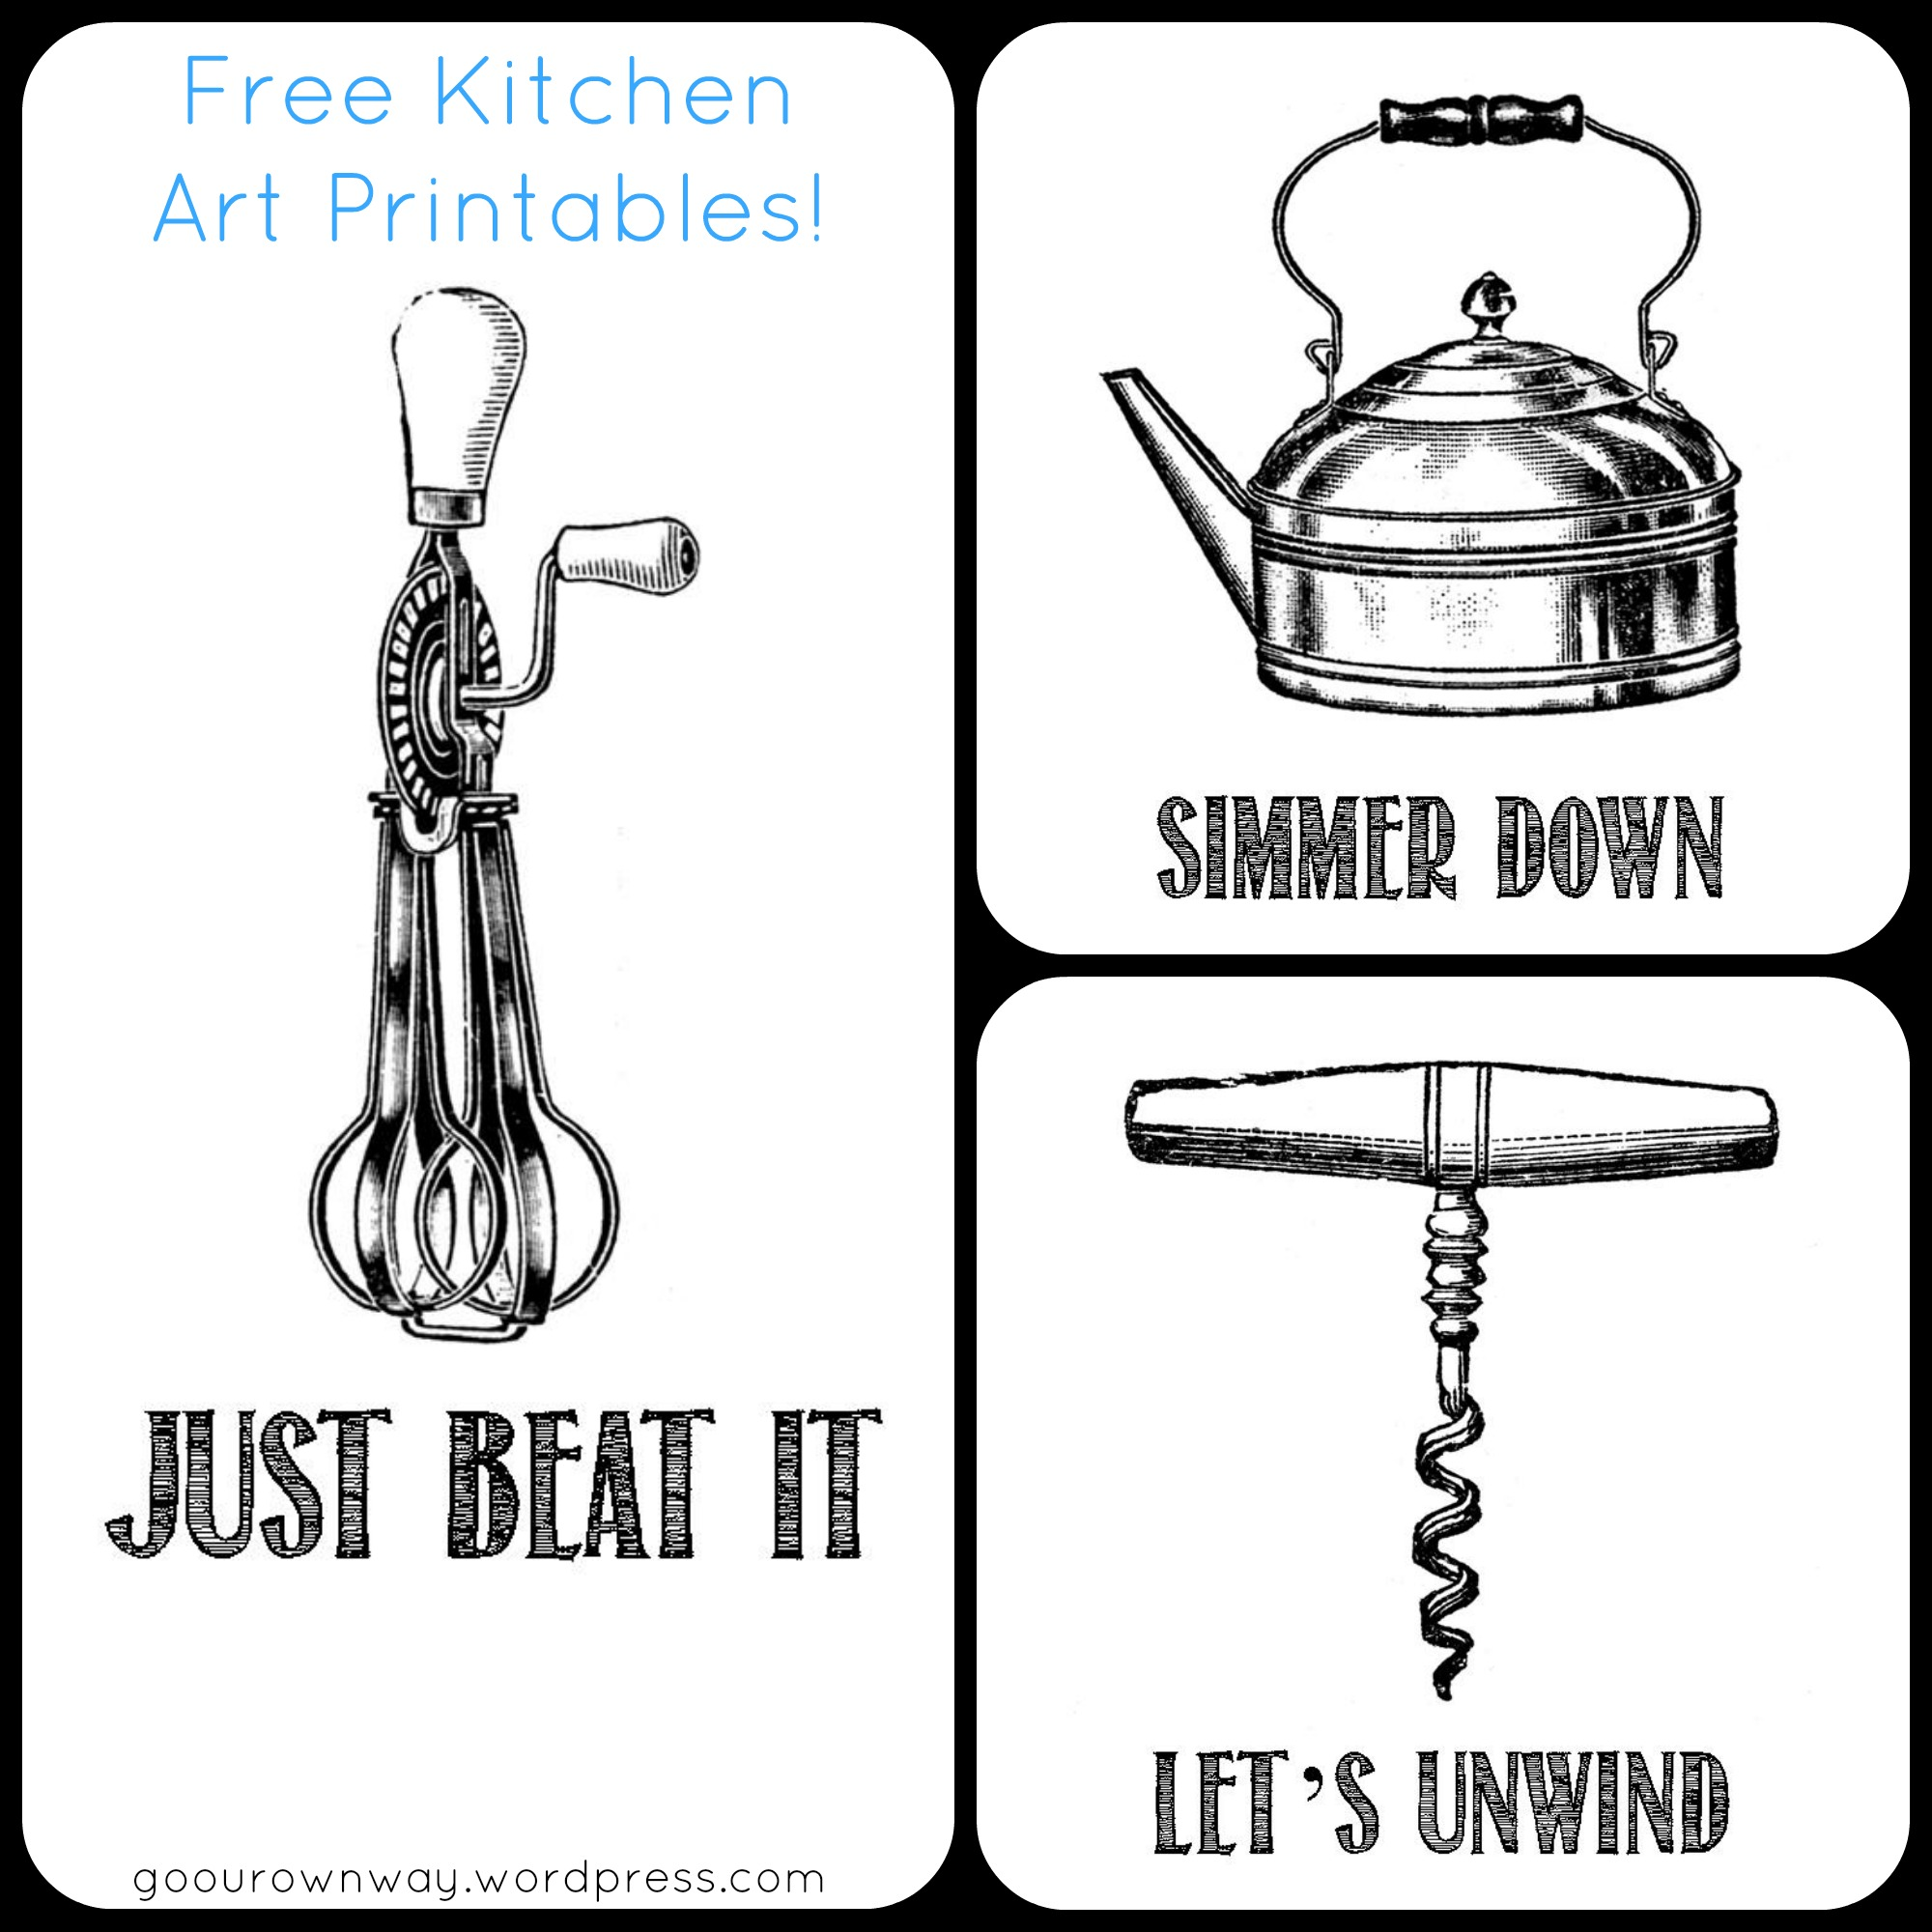 picture regarding Free Kitchen Printable called Kitchen area Artwork totally free printables! Transfer Our Private Course